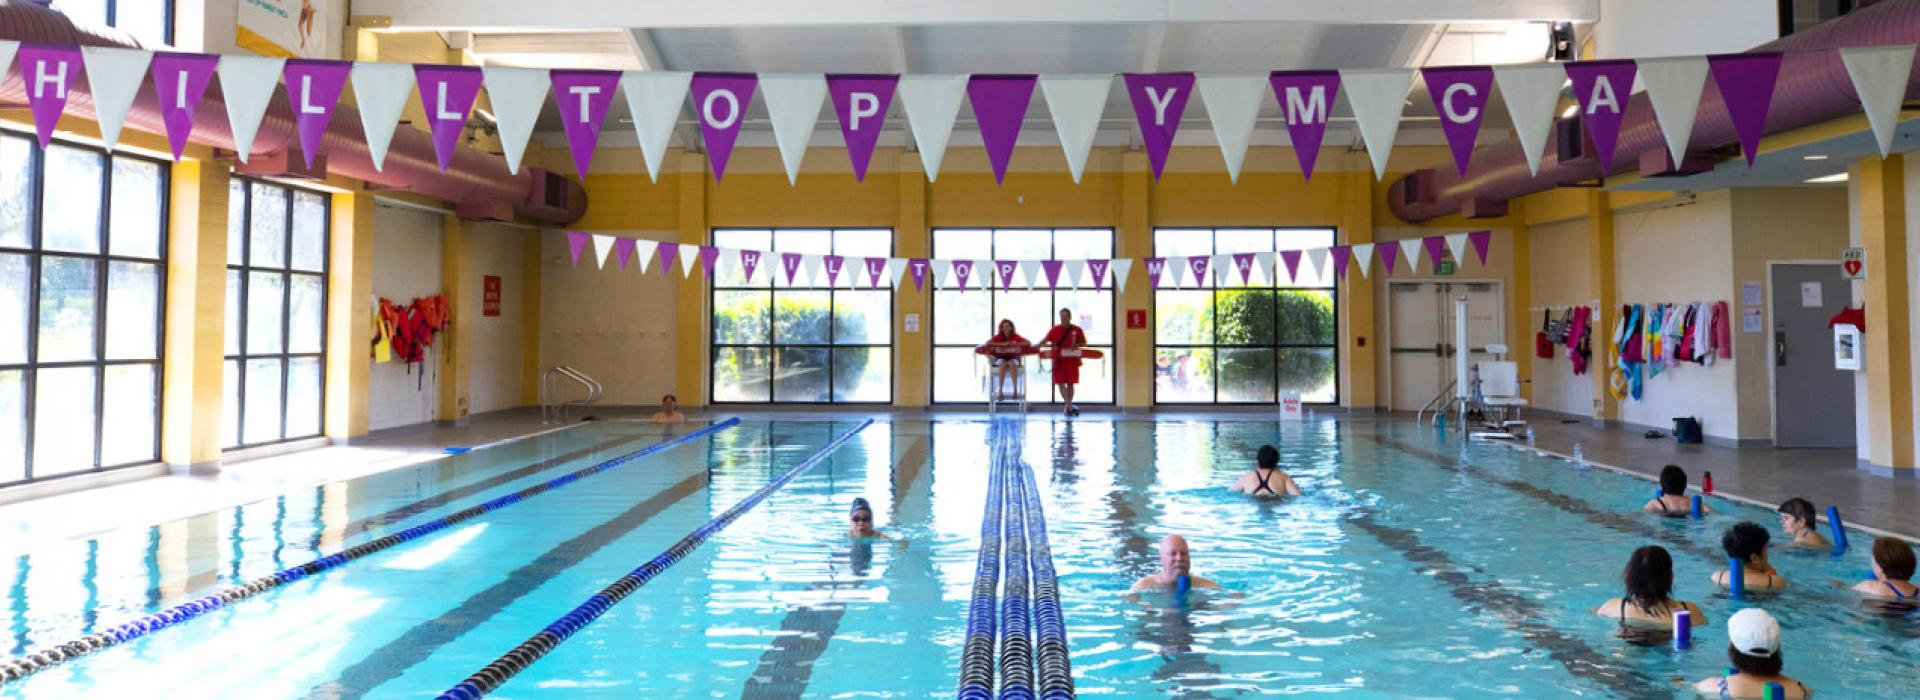 Visit Hilltop Ymca Located At 4300 Lakeside Drive Richmond